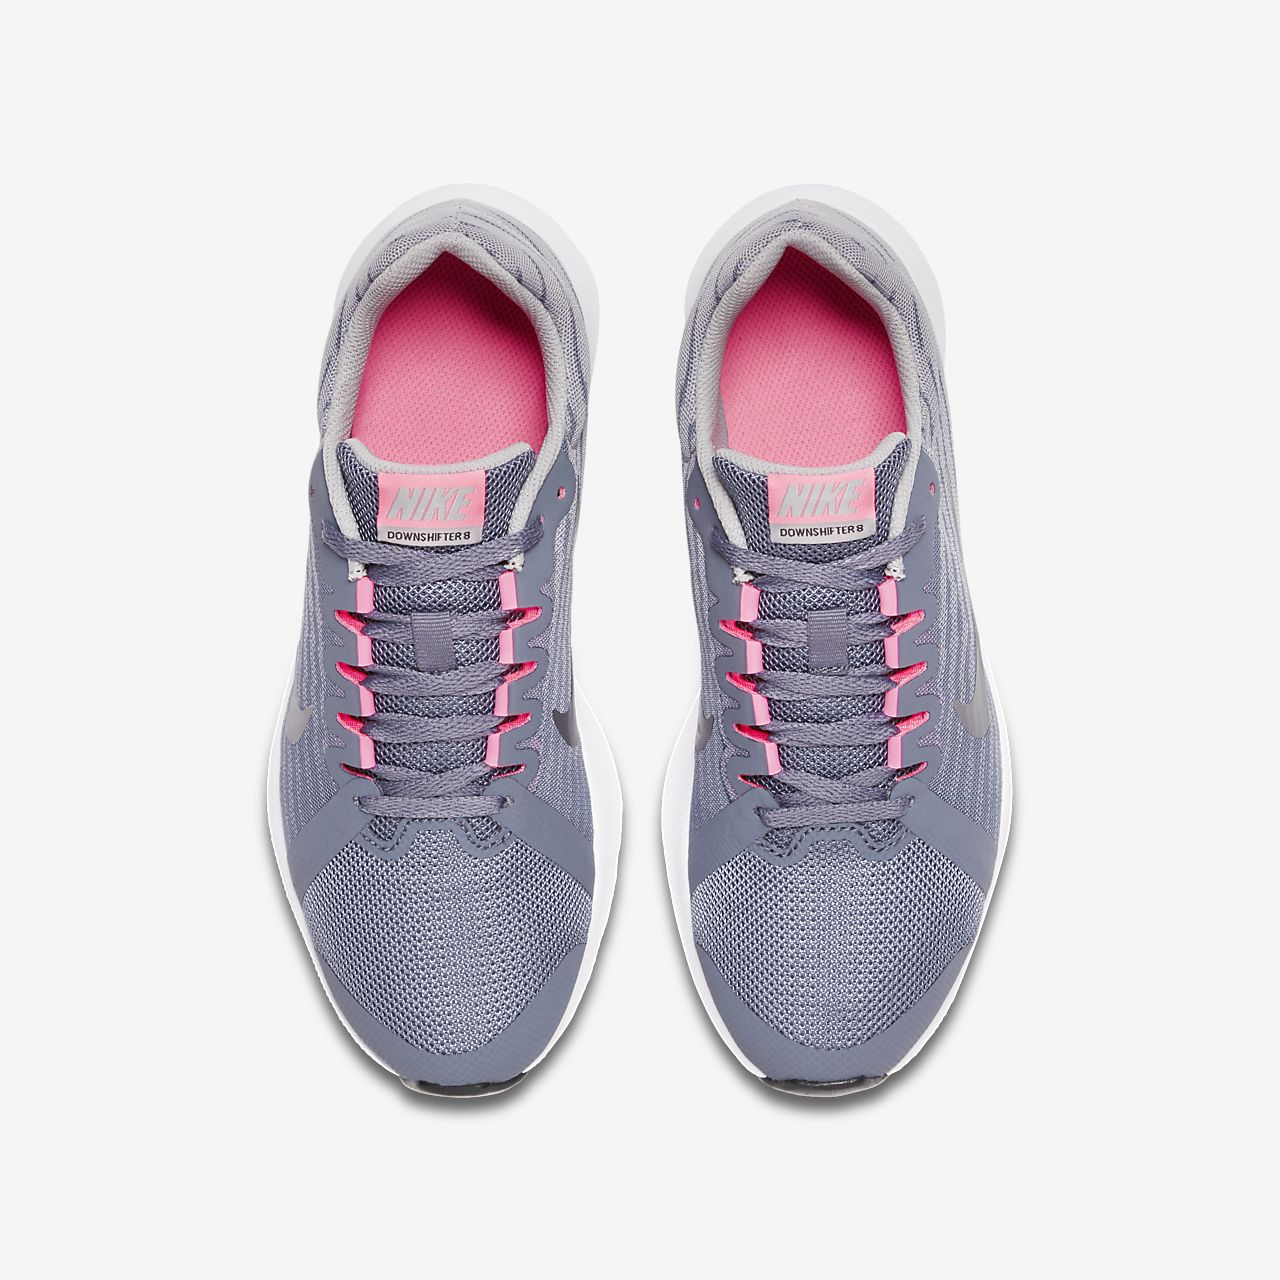 new product c0291 40011 ... Nike Downshifter 8 Older Kids  Running Shoe